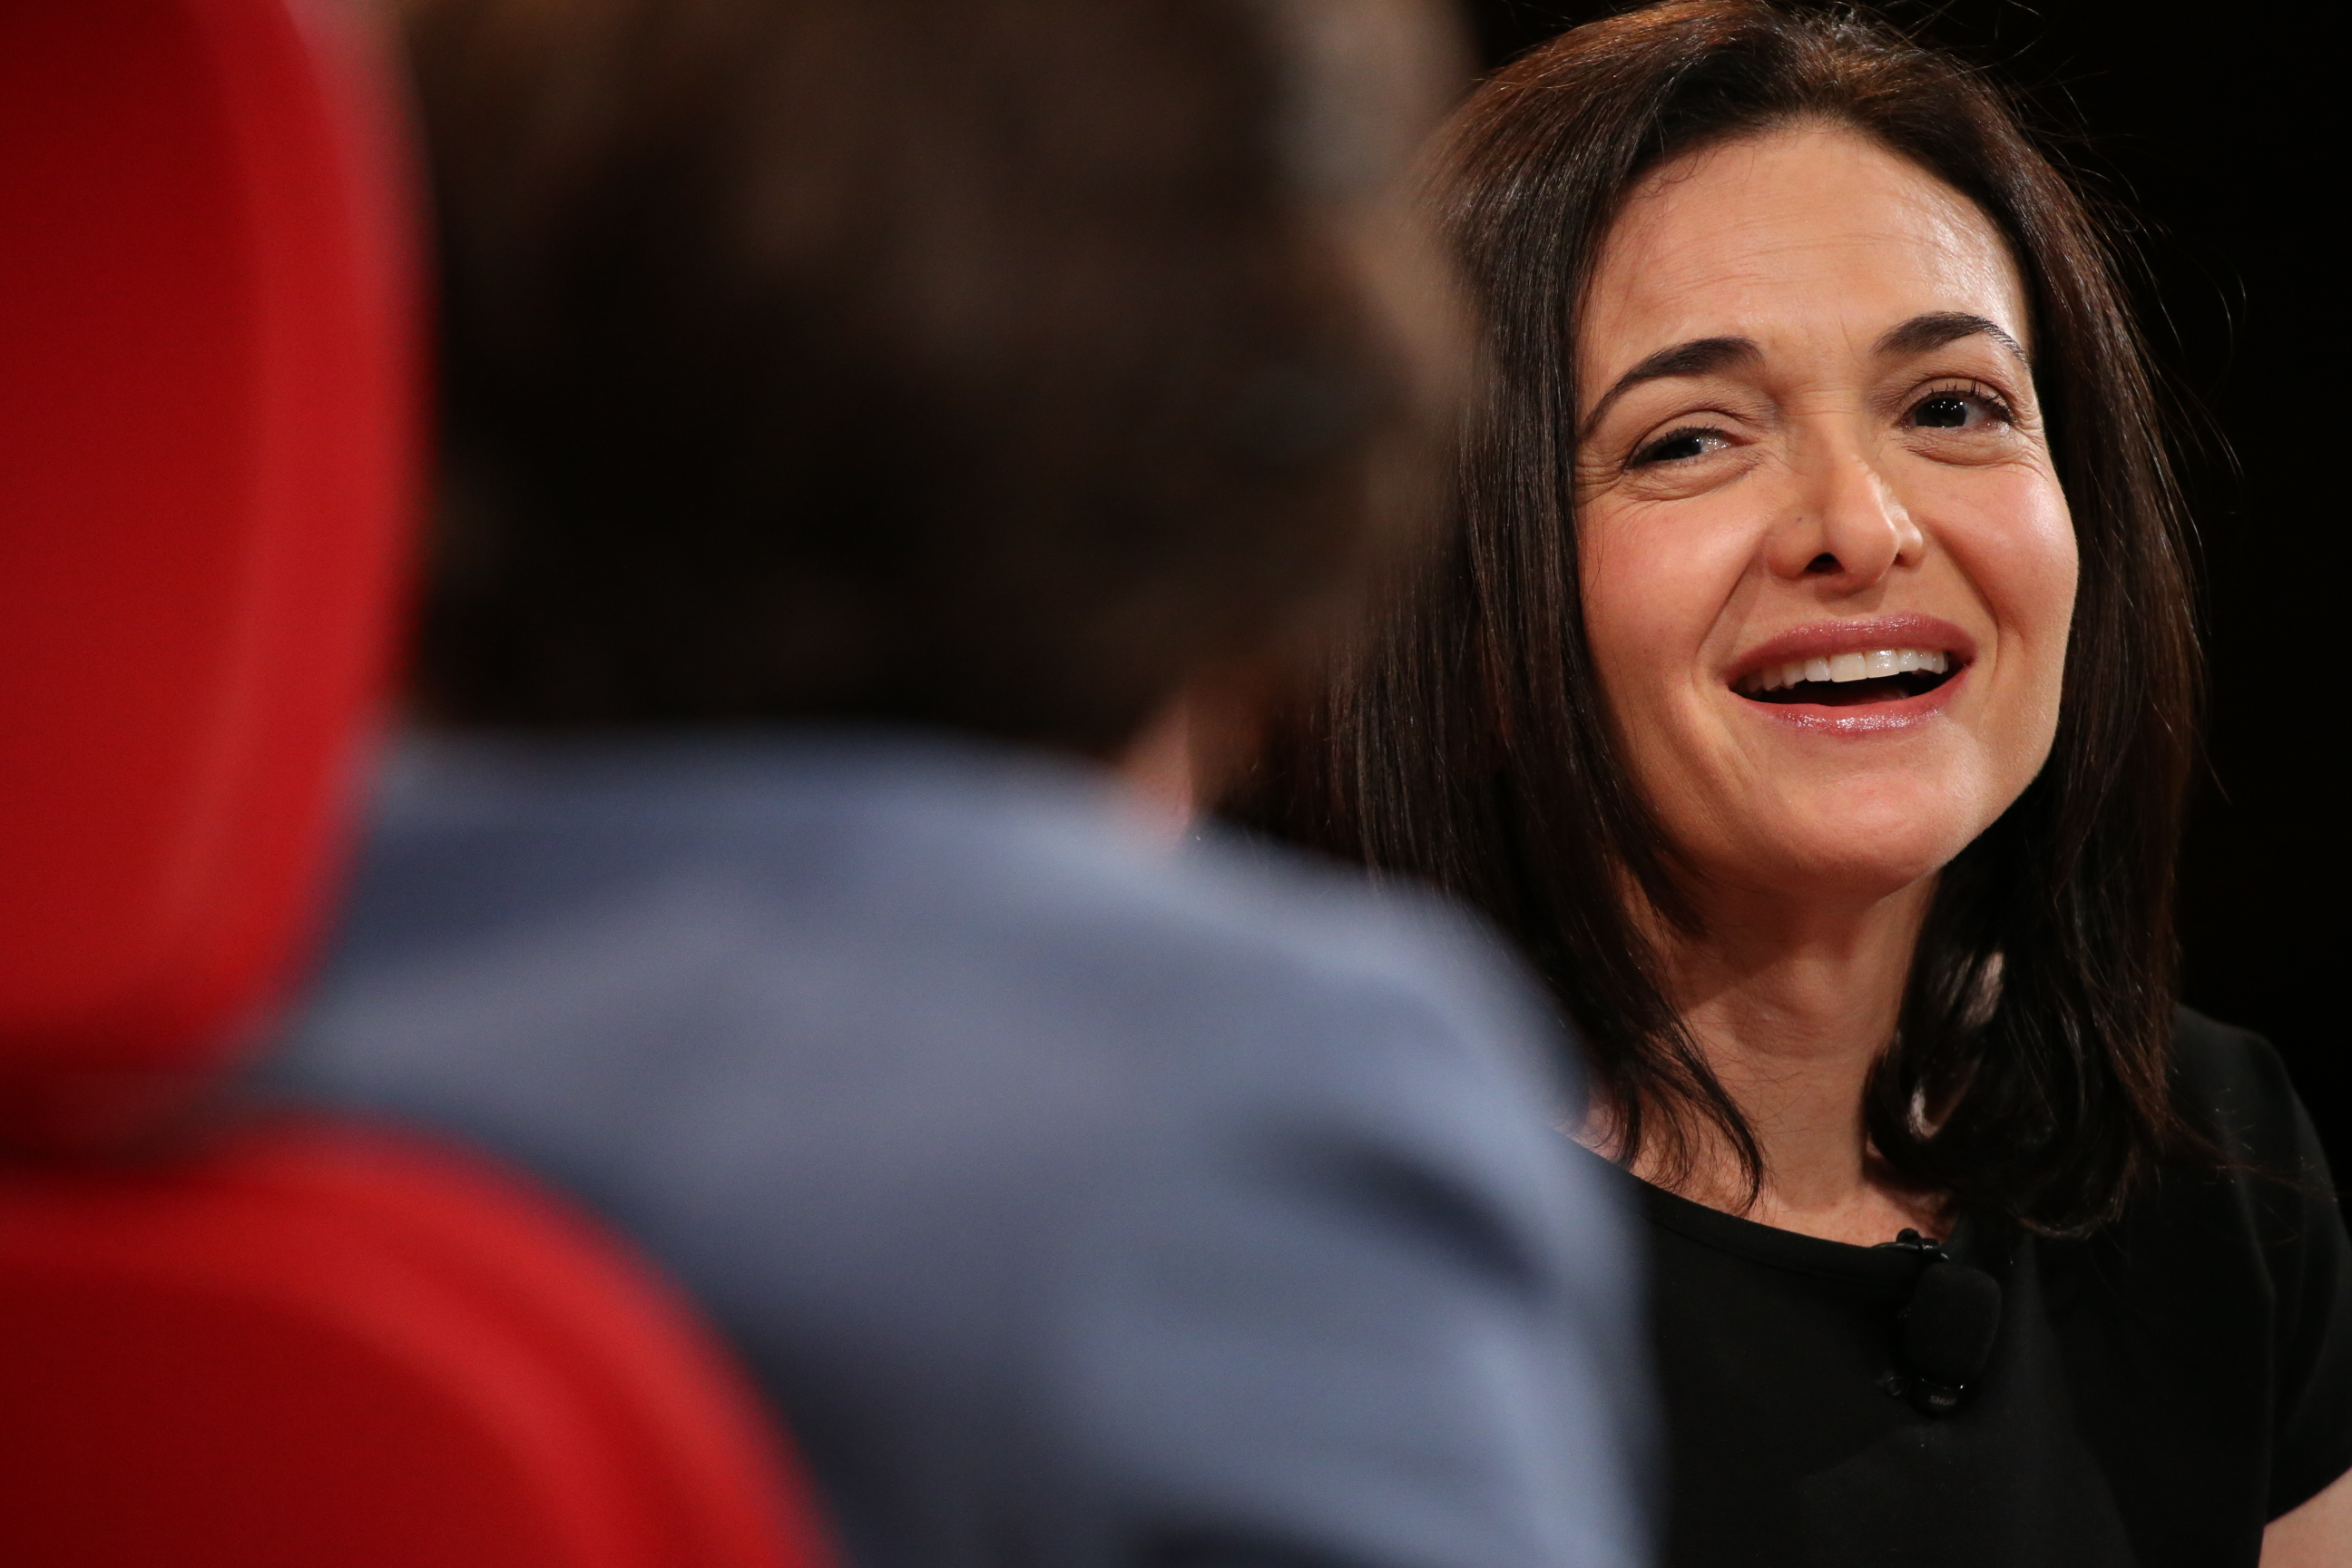 Facebook COO Sheryl Sandberg onstage with Kara Swisher at the Code conference